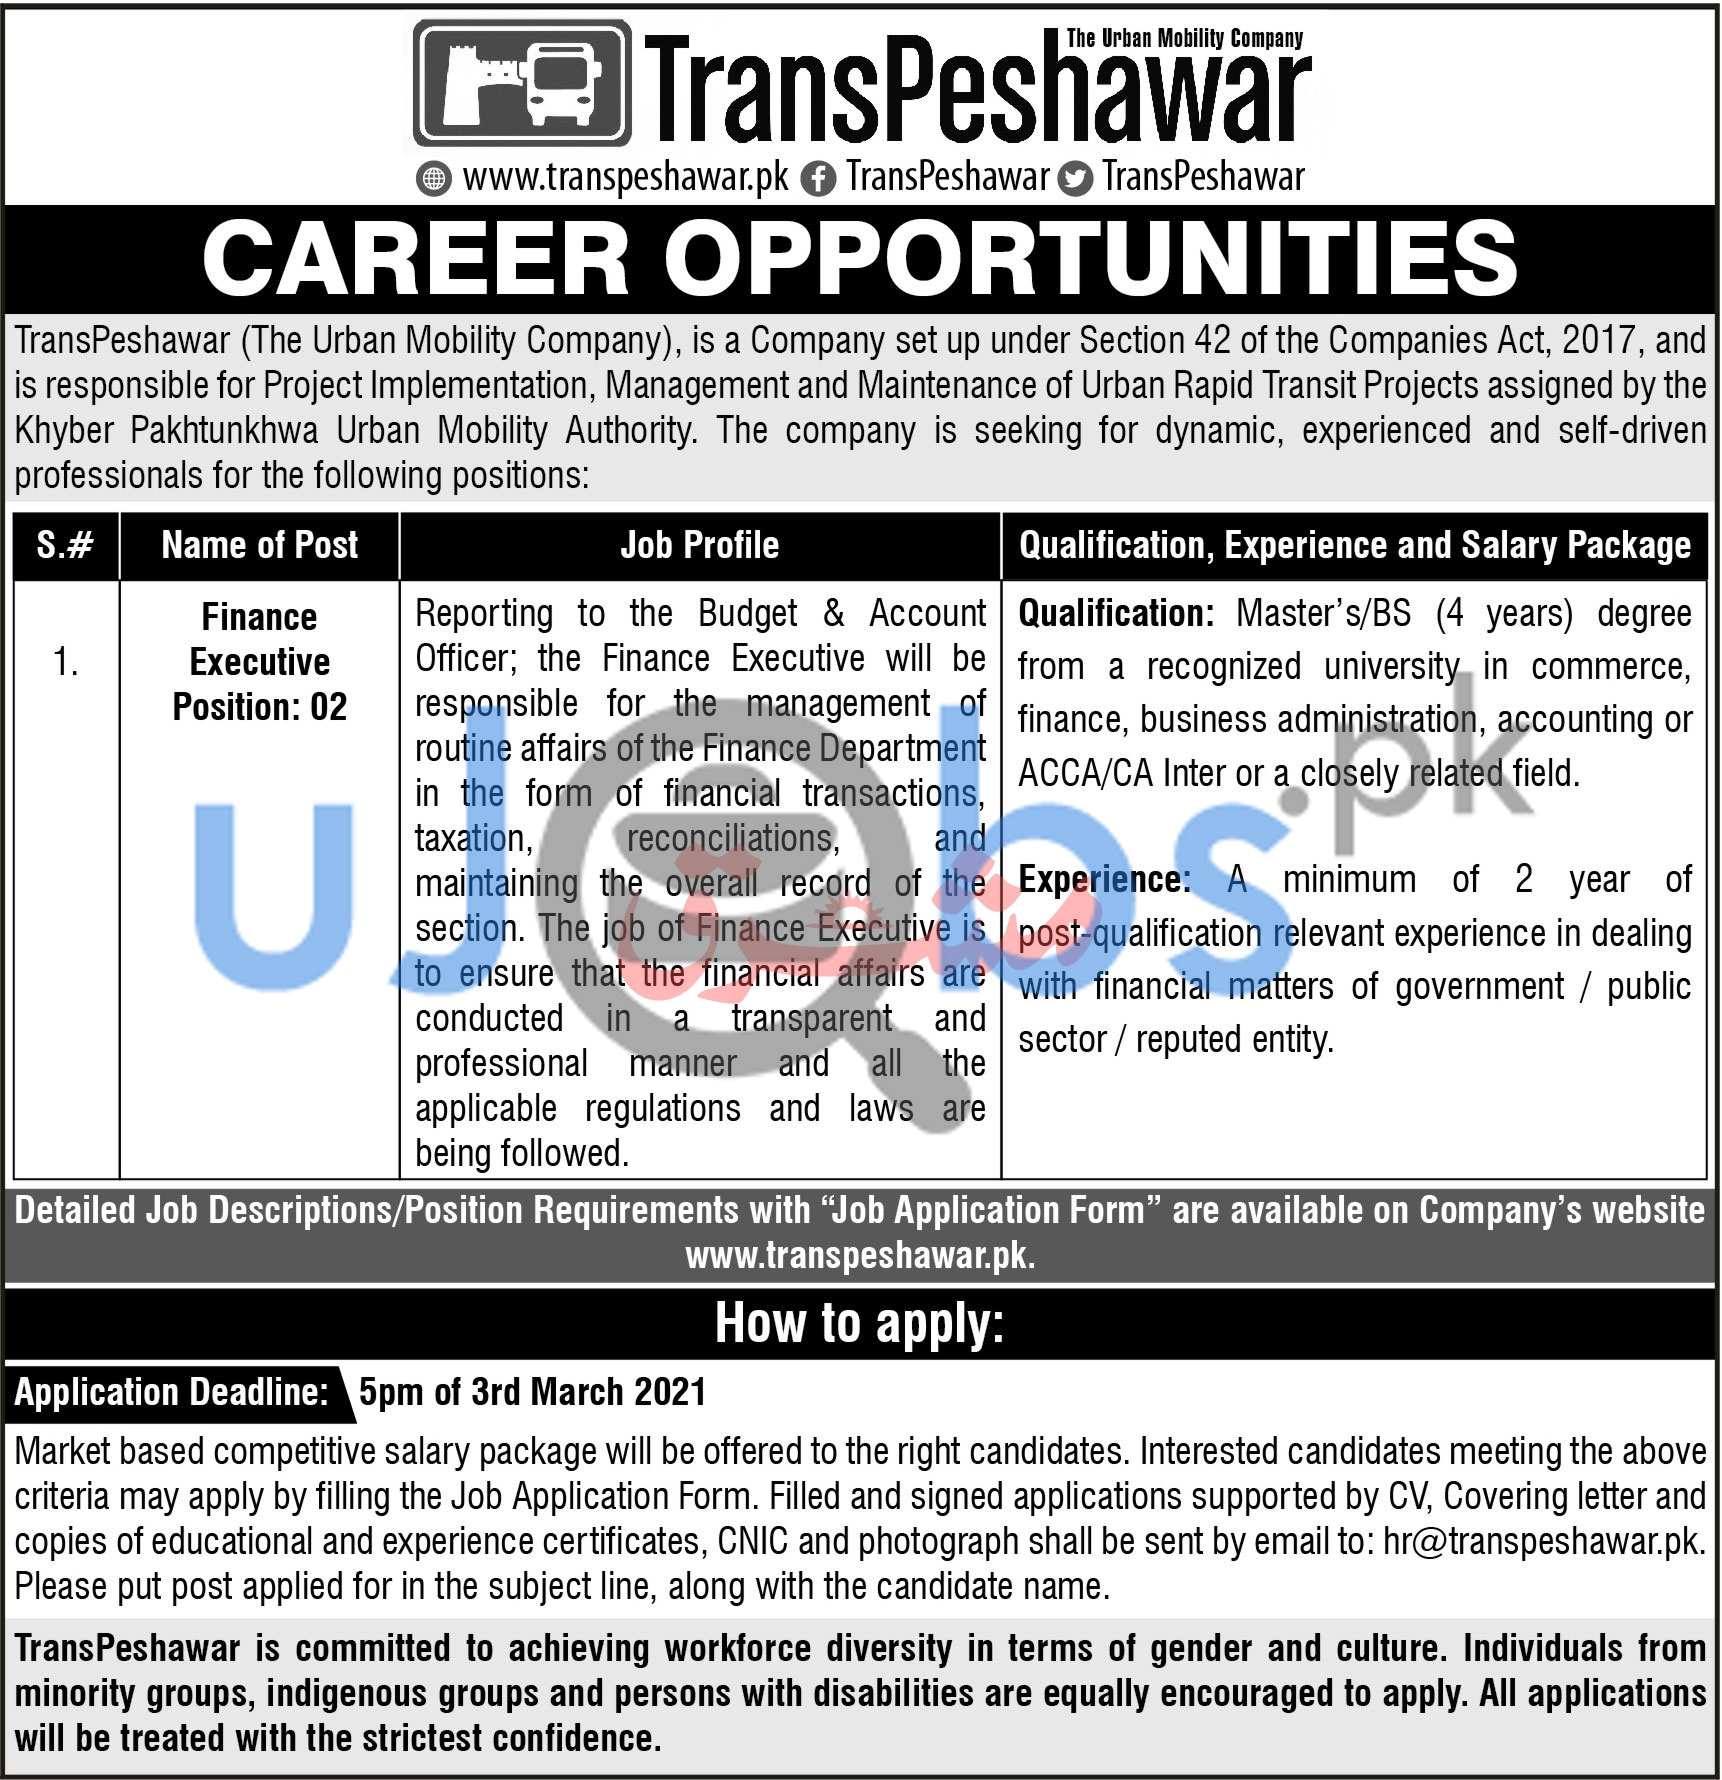 TransPeshawar The Urban Mobility Company Jobs 2021 For Finance Executives